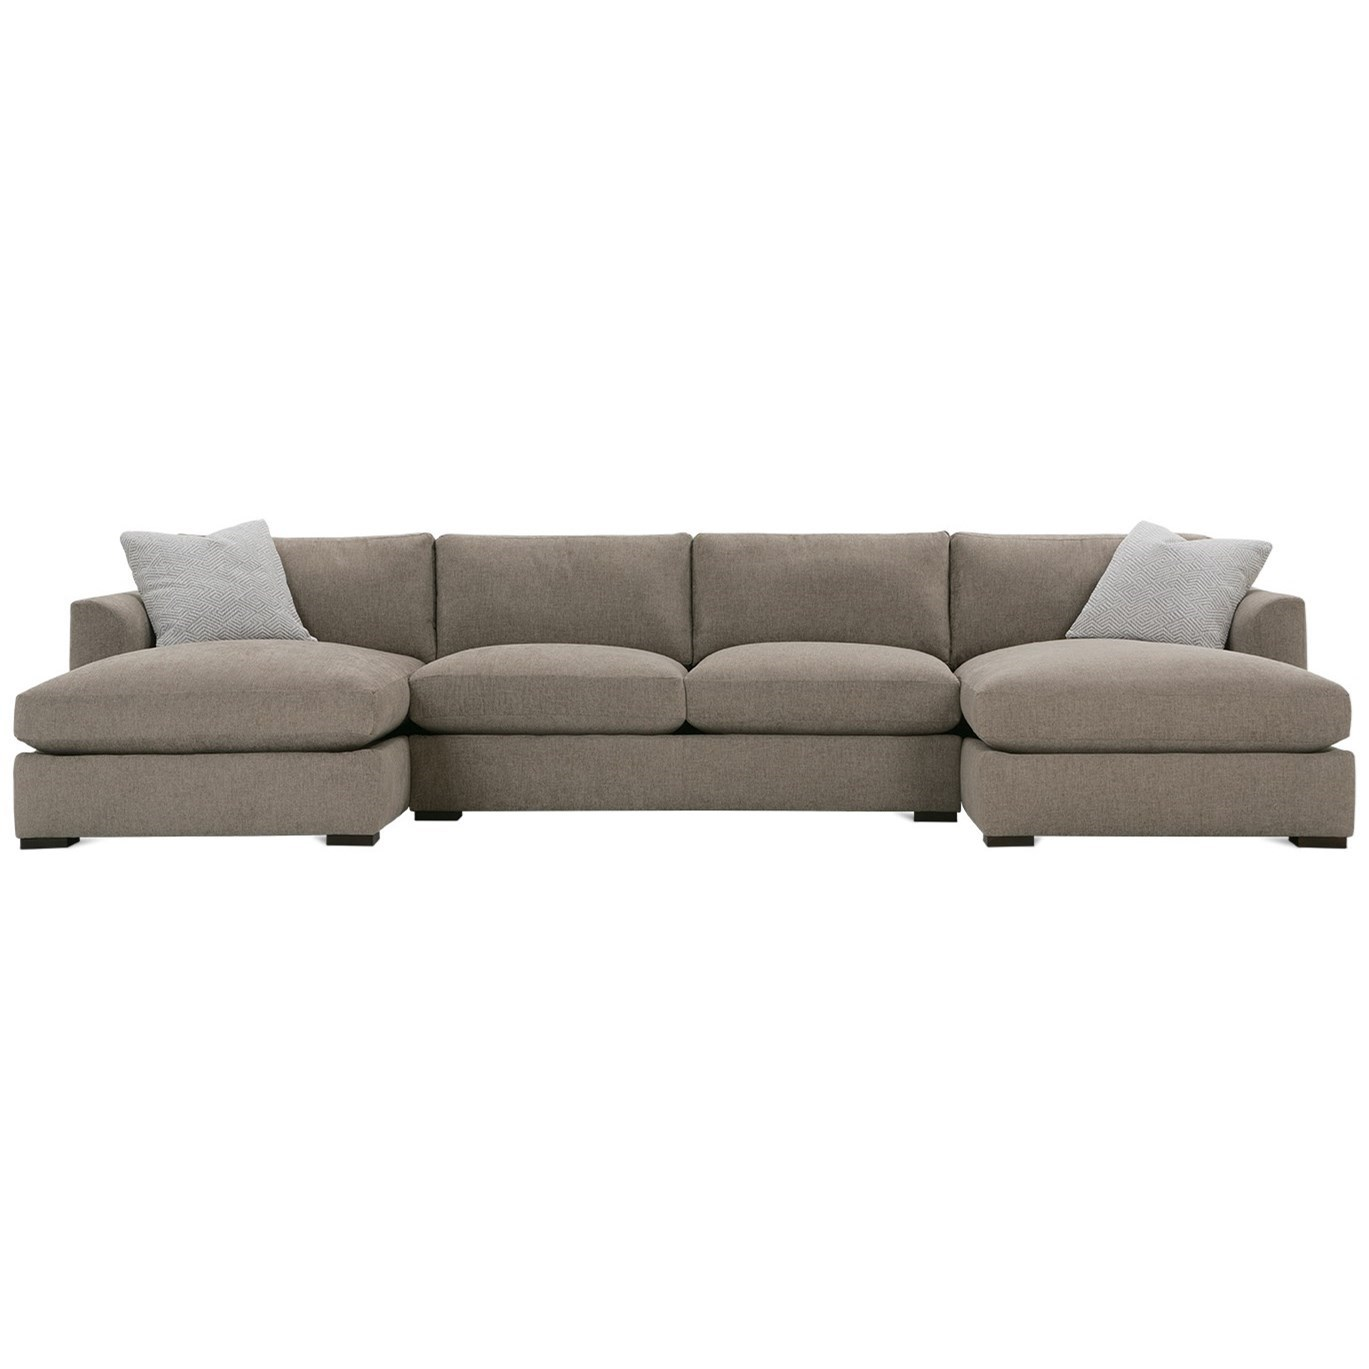 Derby Sectional Sofa by Rowe at Steger's Furniture